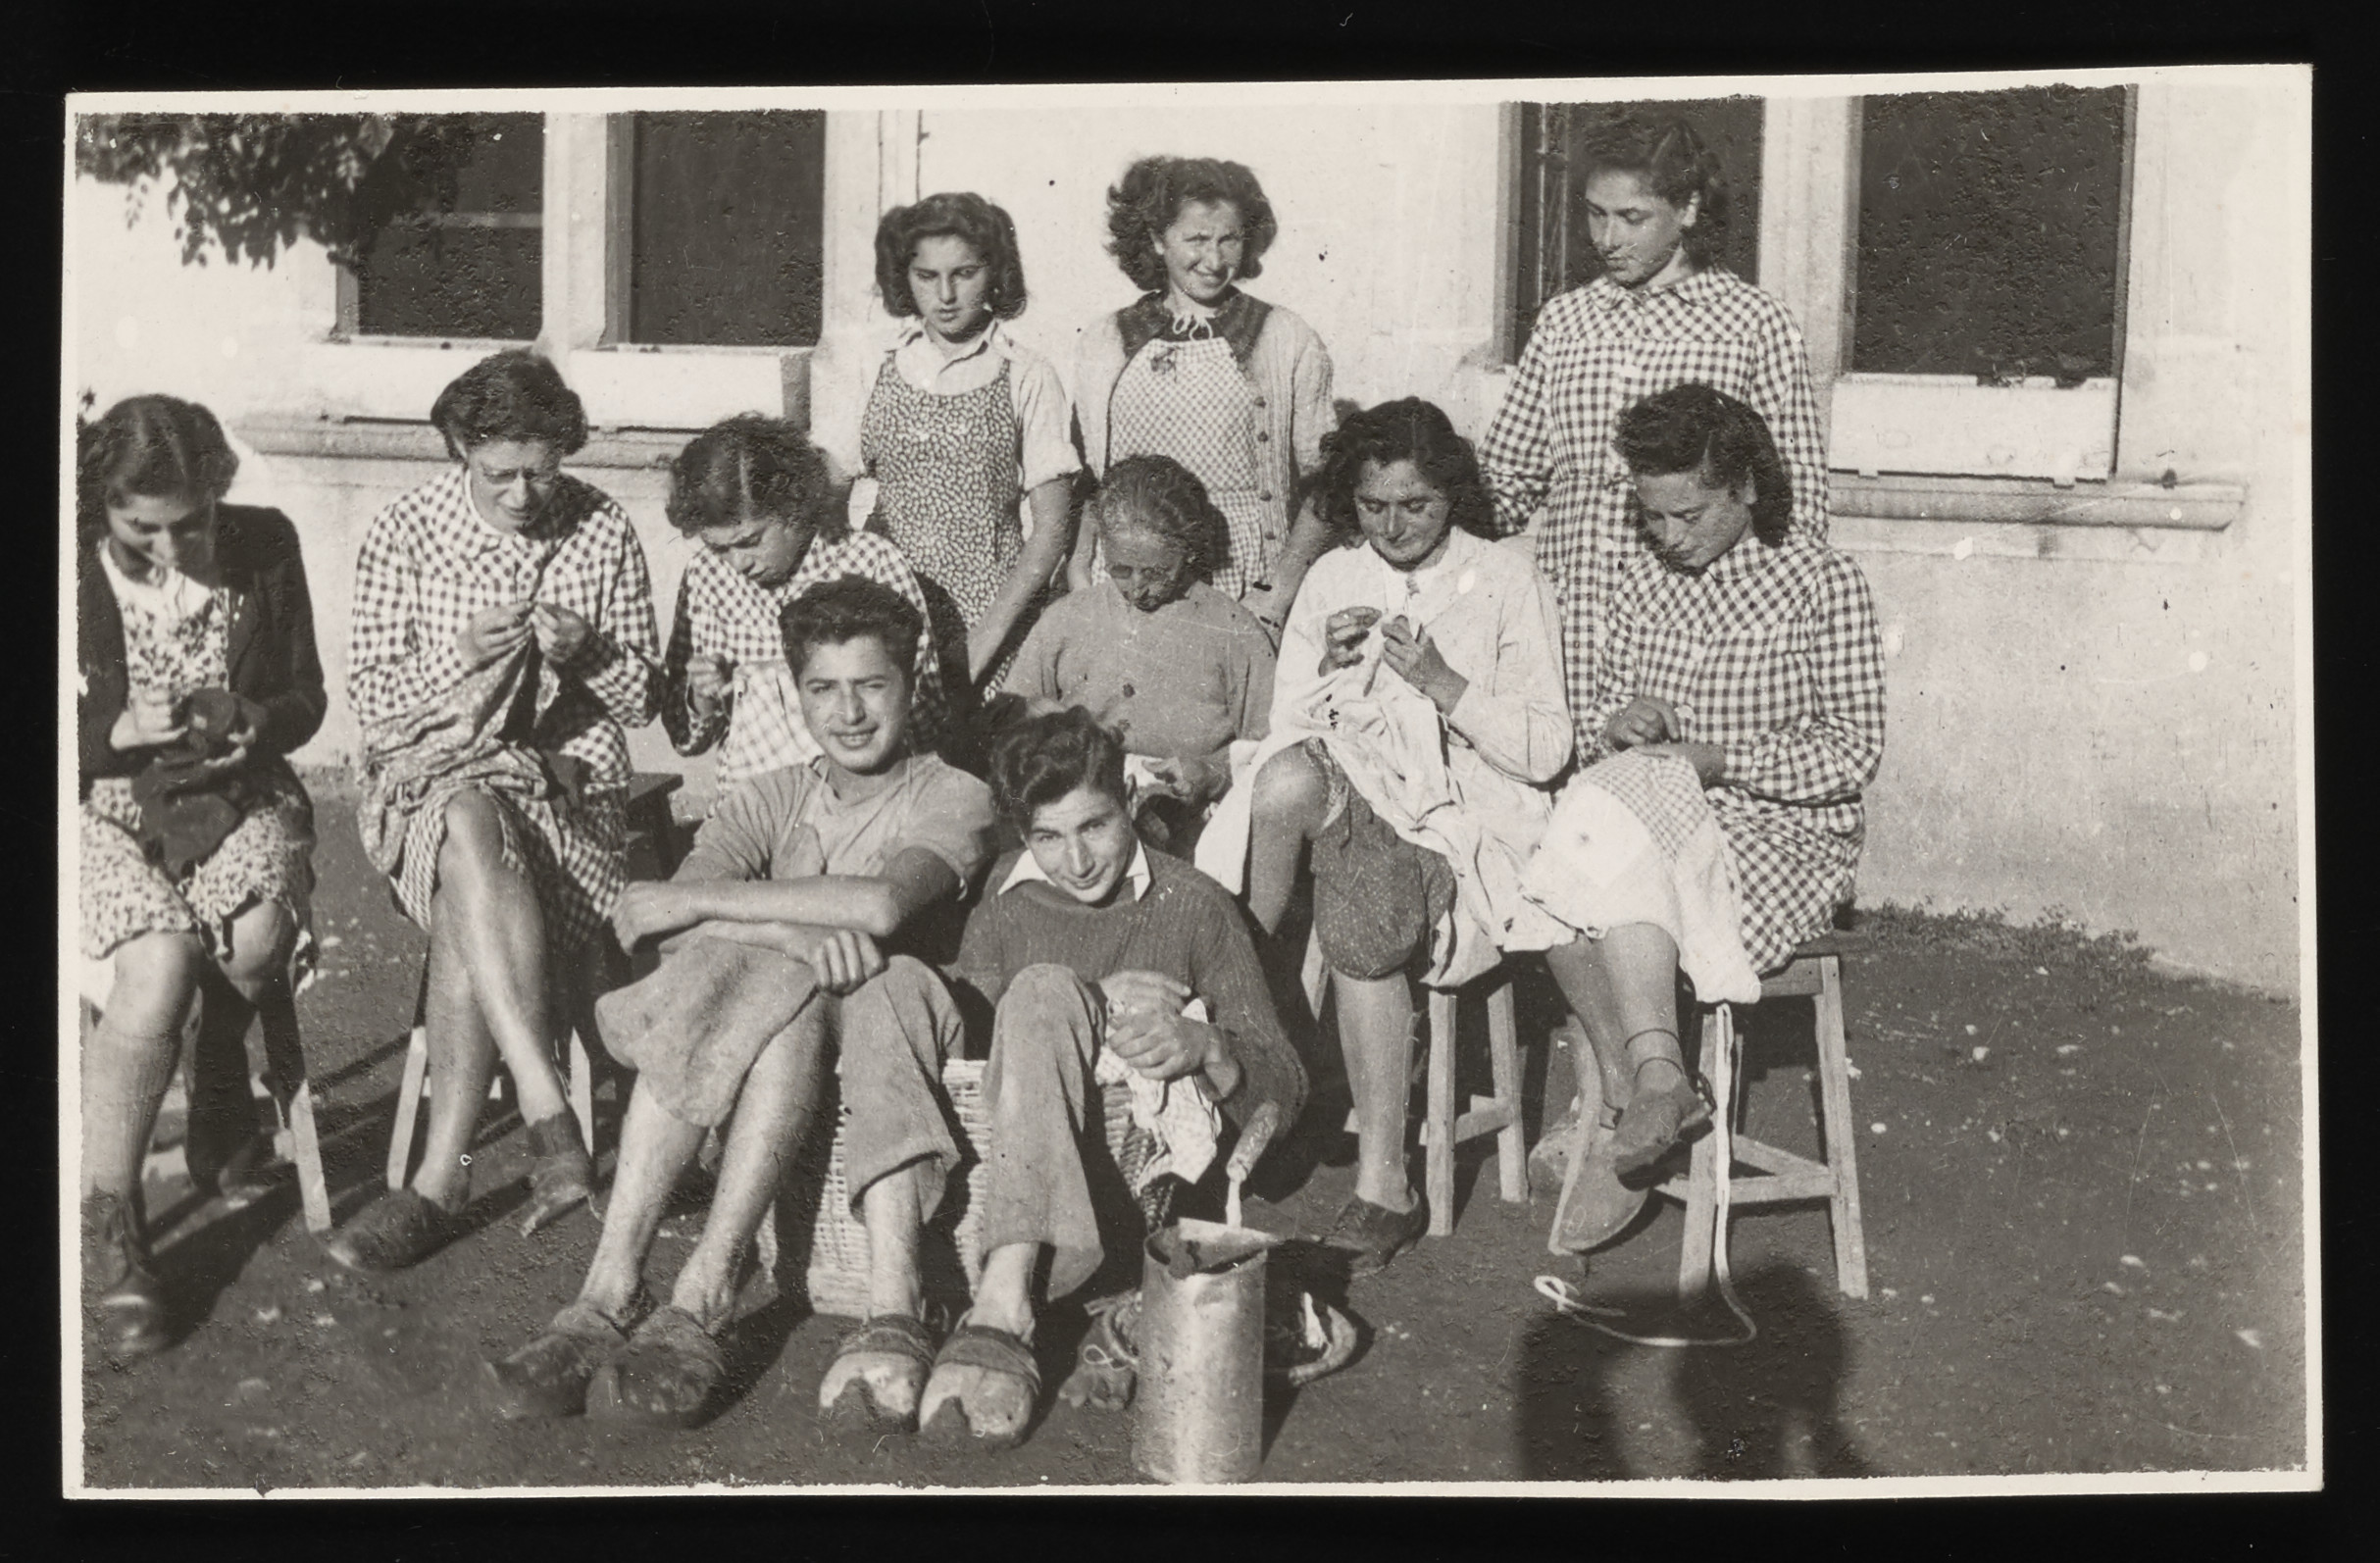 Group portrait of some older children at the La Hille children's home in France.    Pictured from right to left are: Front row: Ilse Bruenell, Bertrand Elkan  Second row: Ruth Klonower, Edith Goldapper, Helga Kern, Mme. Nadal, Rita Leistuer, Inge Schragenheim. Back row: Dela Hochberger, Margot Kern, and unidentified.